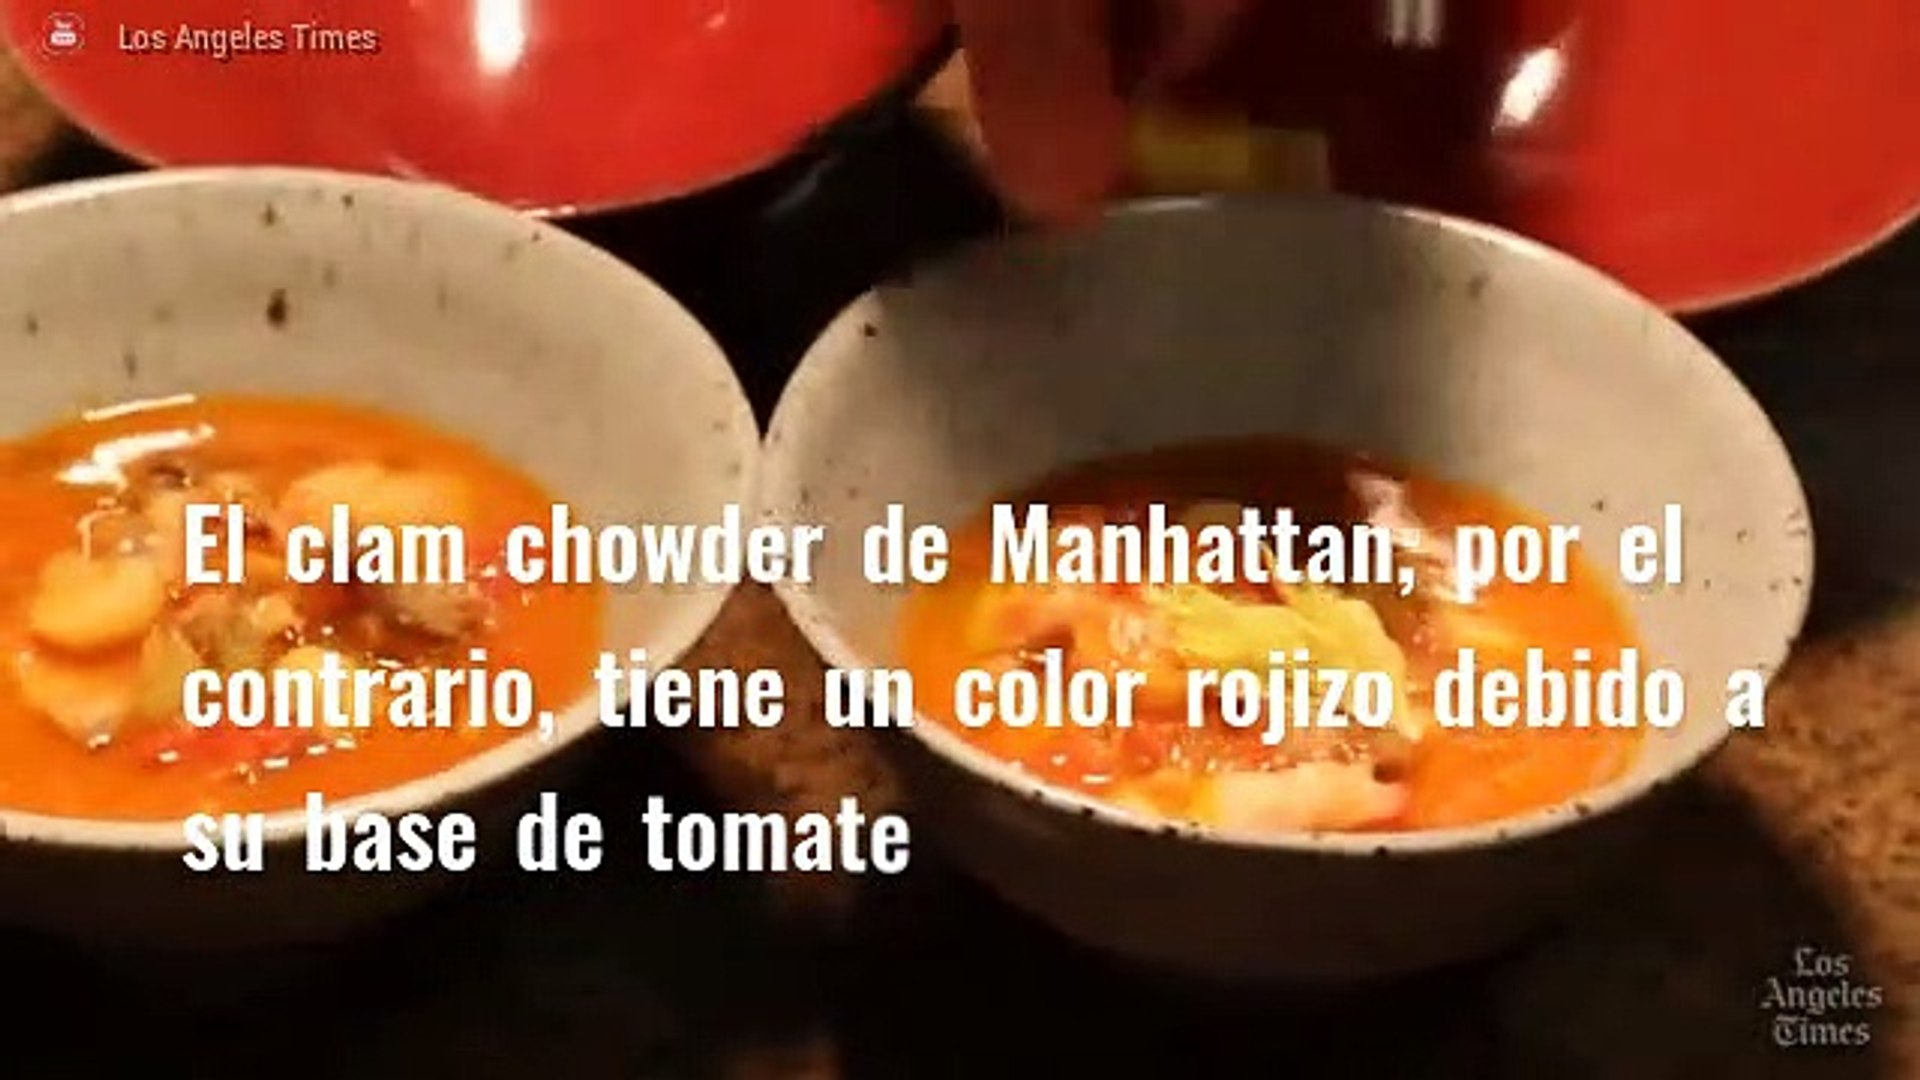 Gastronomía de Estados Unidos: Clam Chowder y Fried Coke